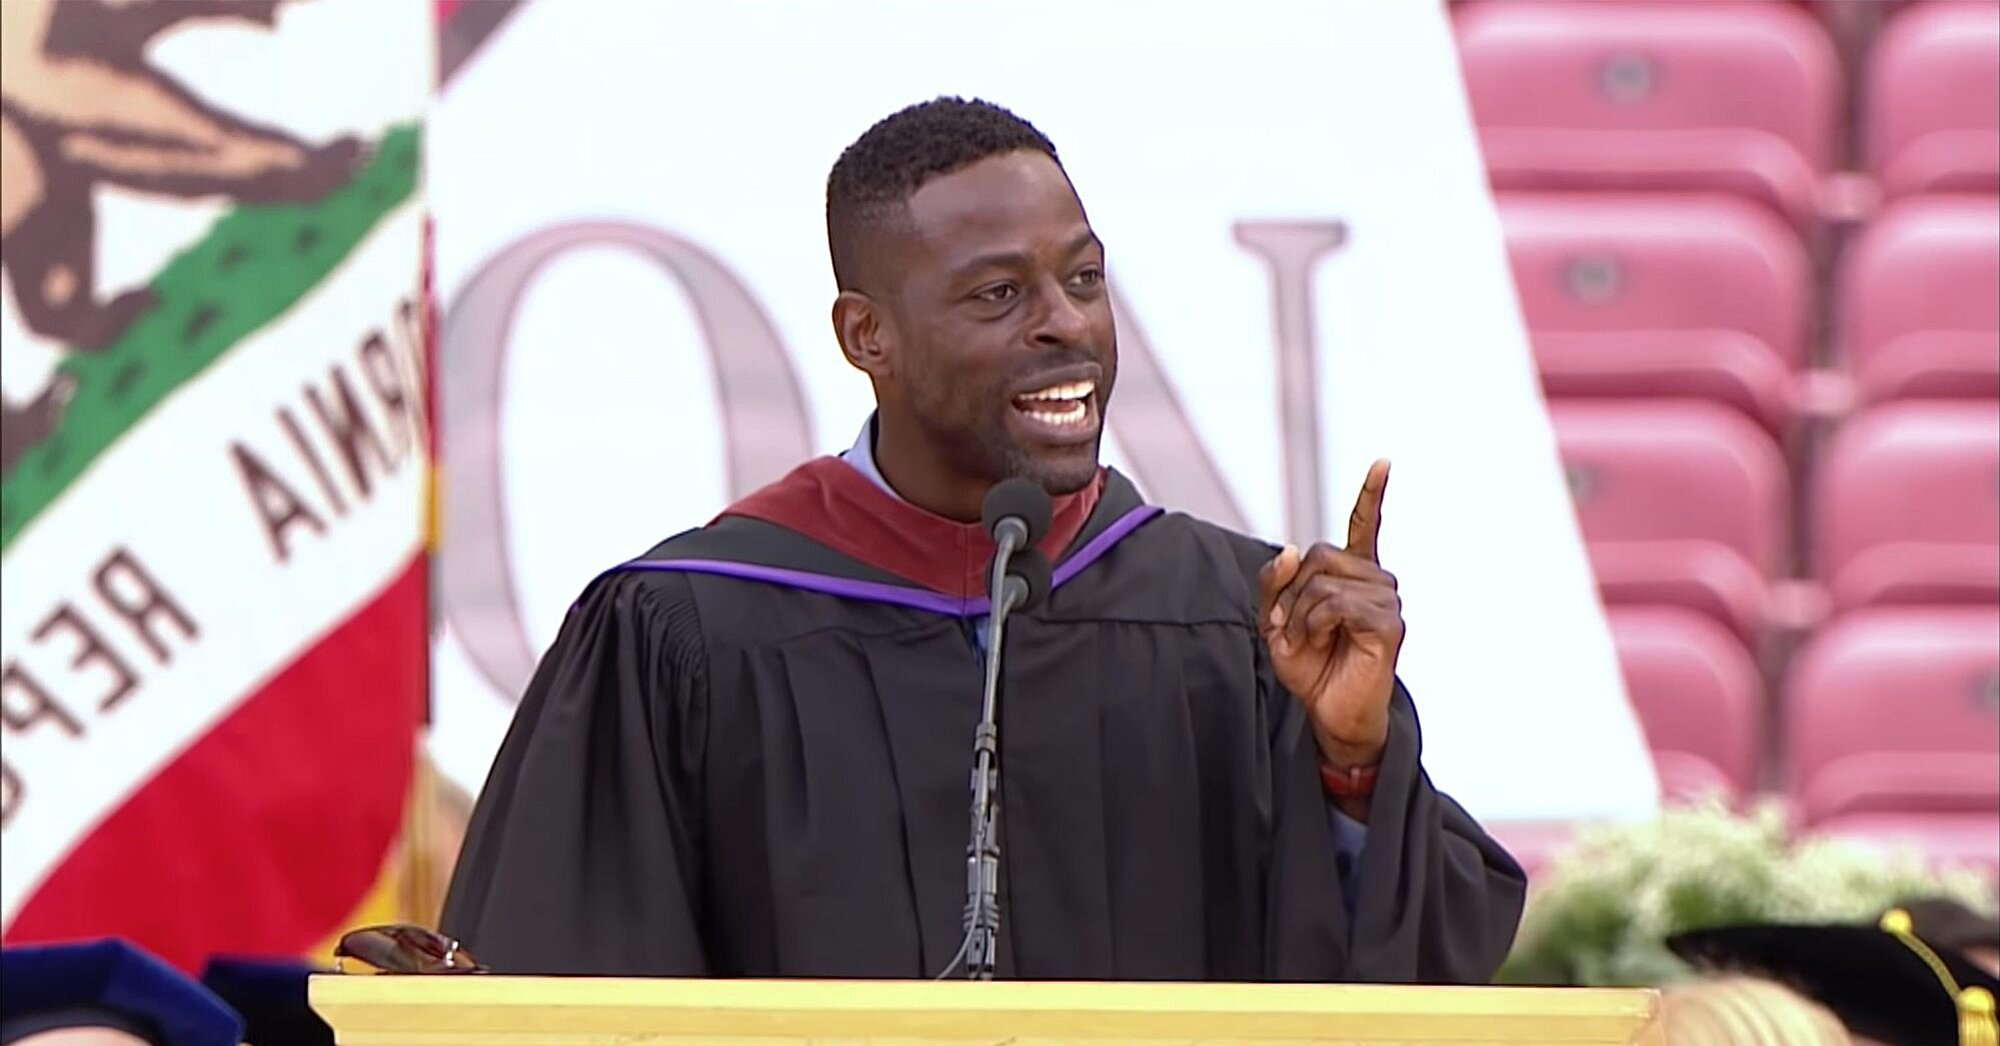 Sterling K Brown Mindy Kaling And More Of 2018 S Most Inspiring Celebrity Graduation Speeches Flipboard